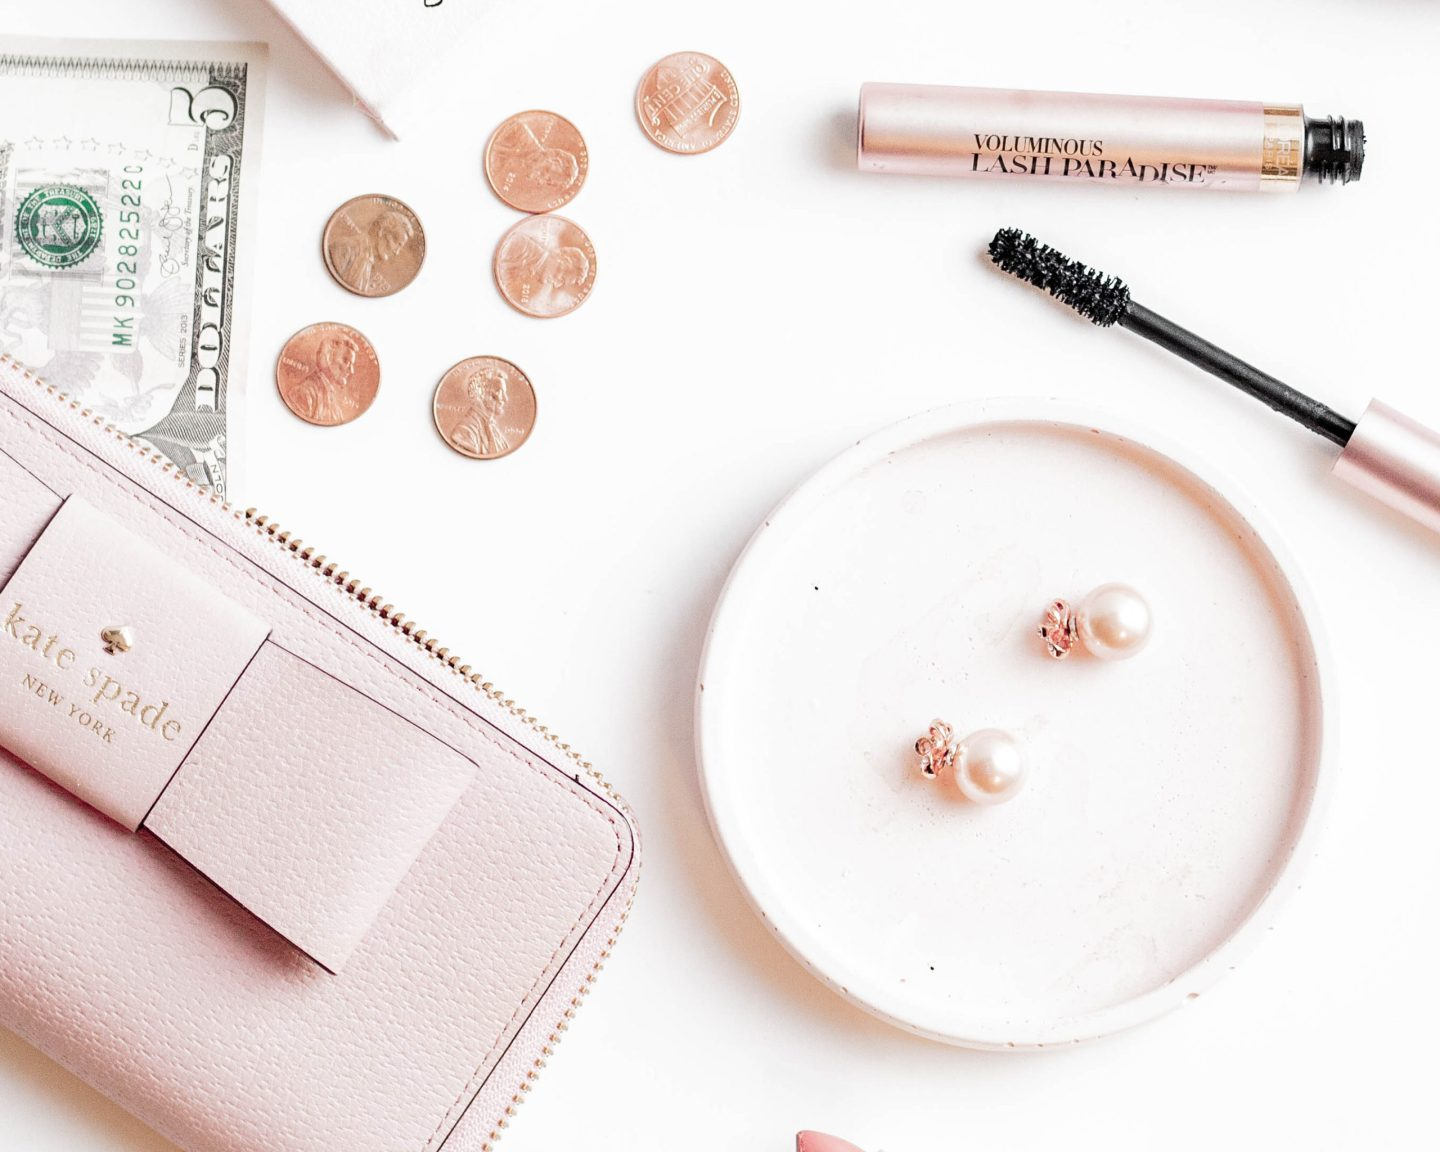 My Blogging Mistakes: Why It Took Me 3 Years to Start Making Money